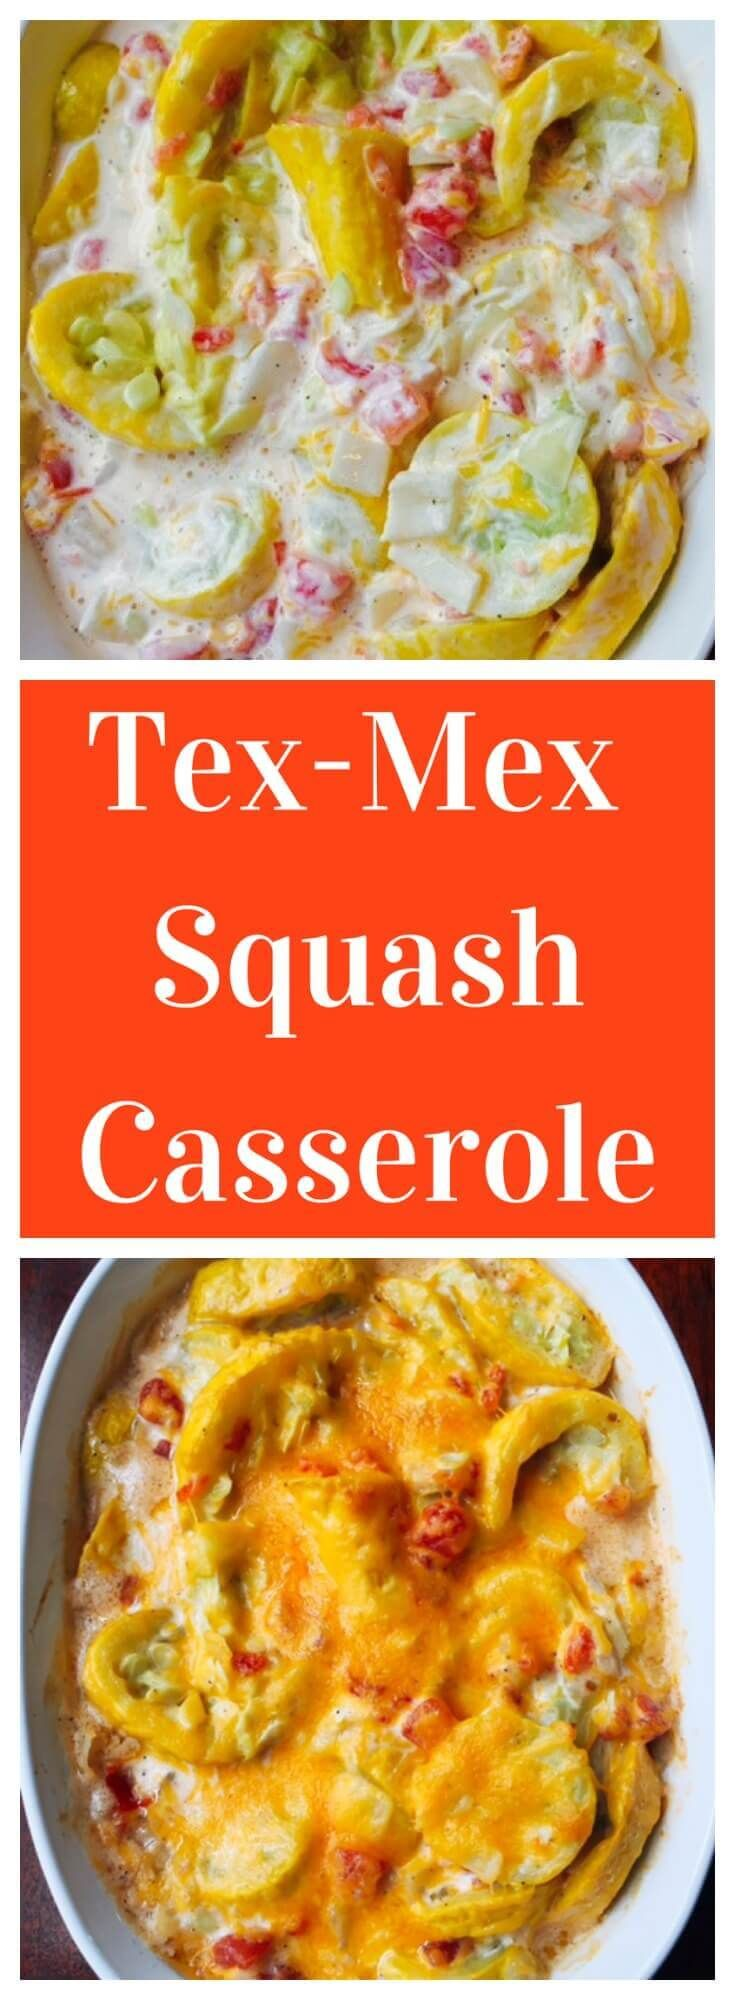 Tex-Mex Squash Casserole- squash mixed with rotel in a creamy sauce. Low carb